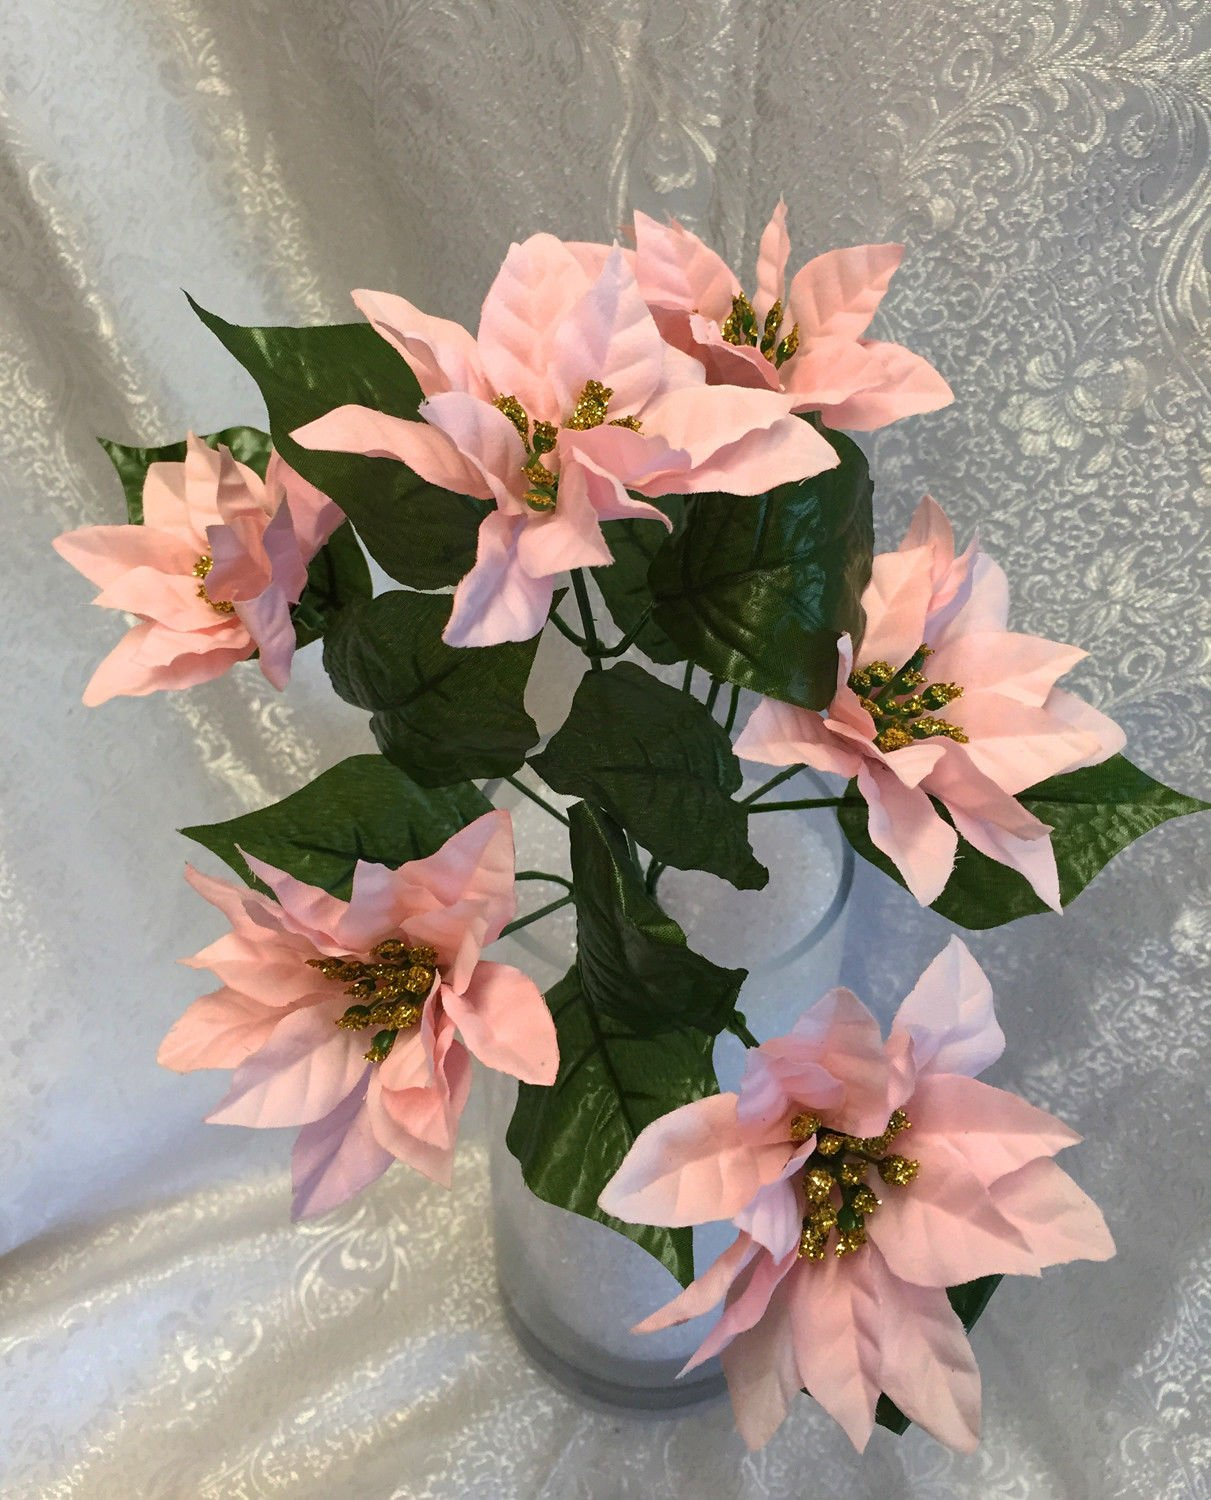 1-Bouquet-of-6-Mini-Pink-Poinsettias-Silk-Wedding-Decoration-Flowers-Artificial-Arrangement-Centerpiece-Bouquet-Christmas-Bush